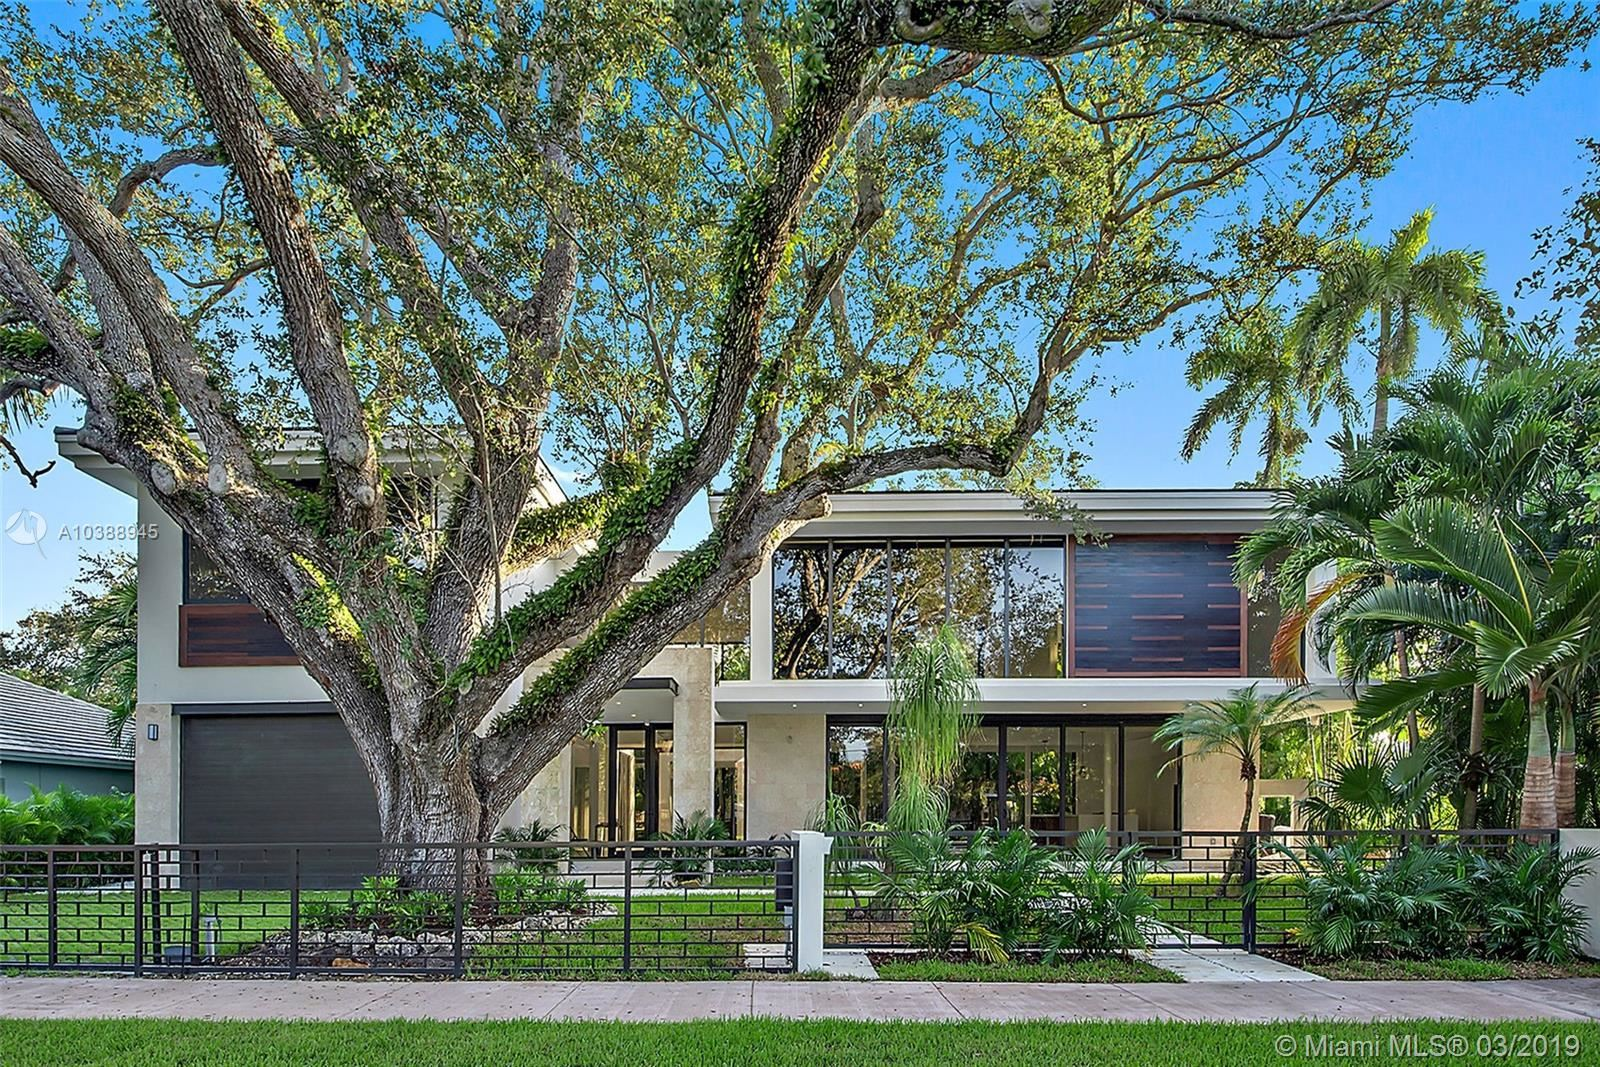 Photo of 6345 Riviera Drive, Coral Gables, FL 33146 (MLS # A10388945)